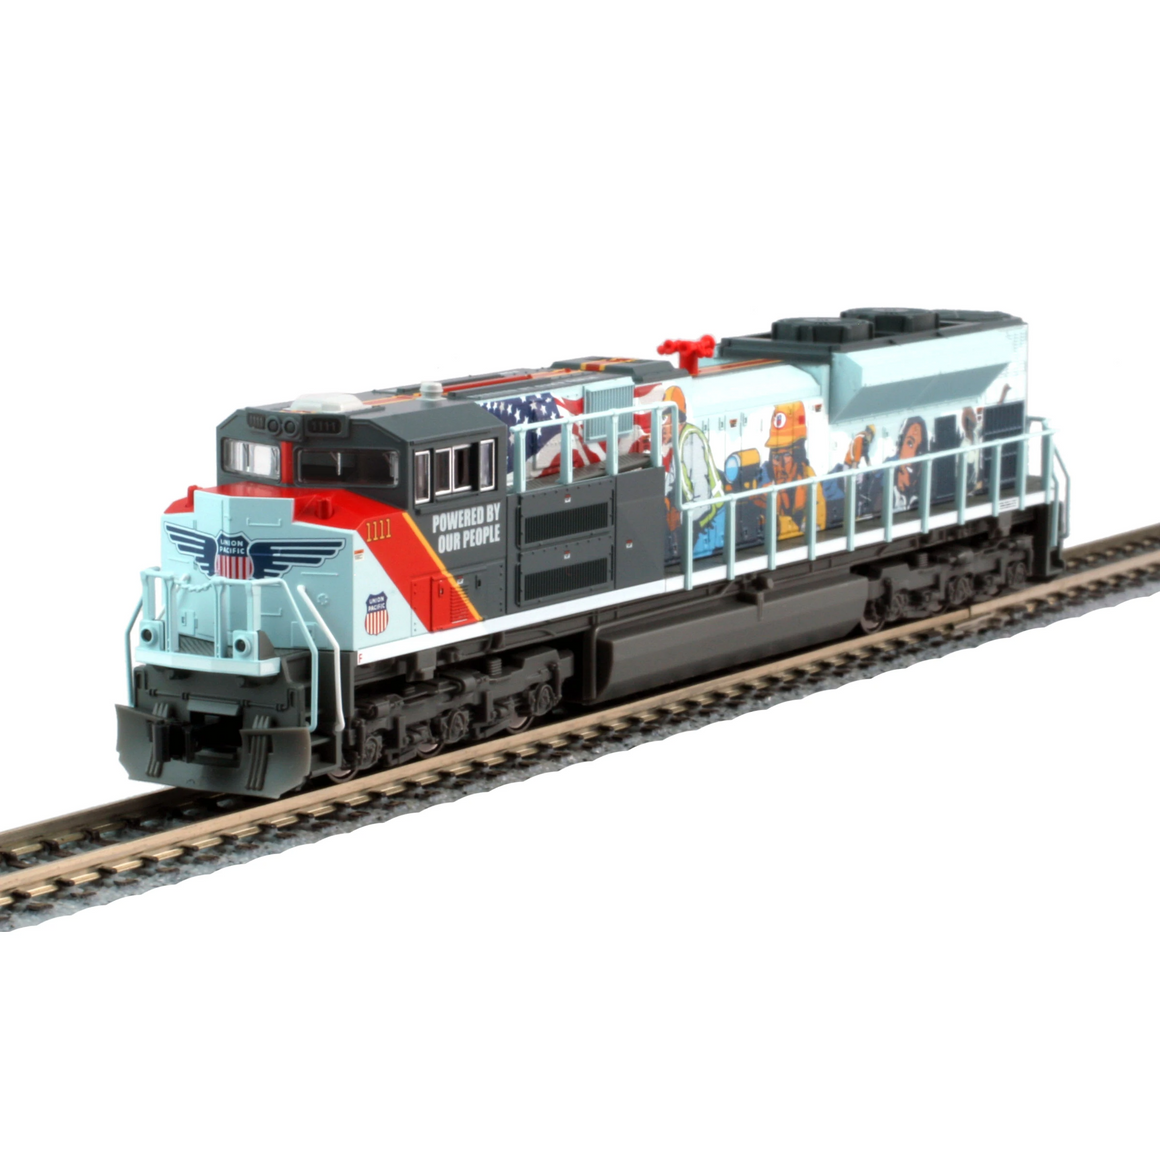 N Scale: EMD SD70ACe - DCC Equipped - Union Pacific 'Powered by our People'